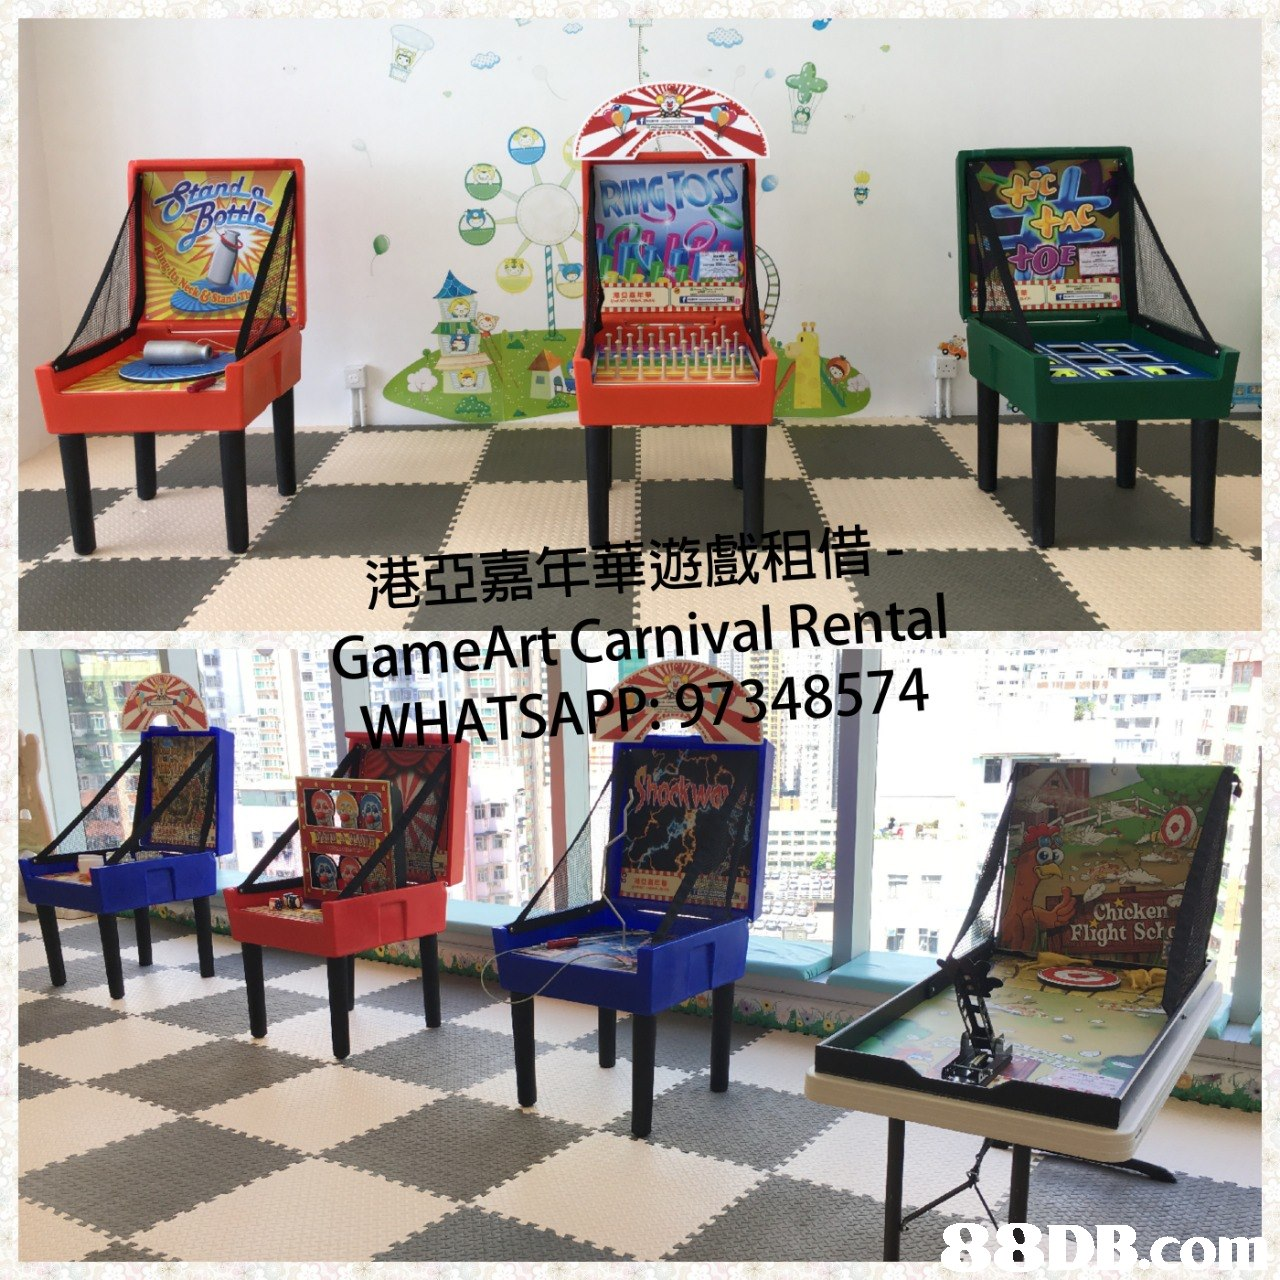 GameArt Carnival Rental WHATSAPP: 97348574 Chicken Flight Schc  Room,Furniture,Games,Table,Technology